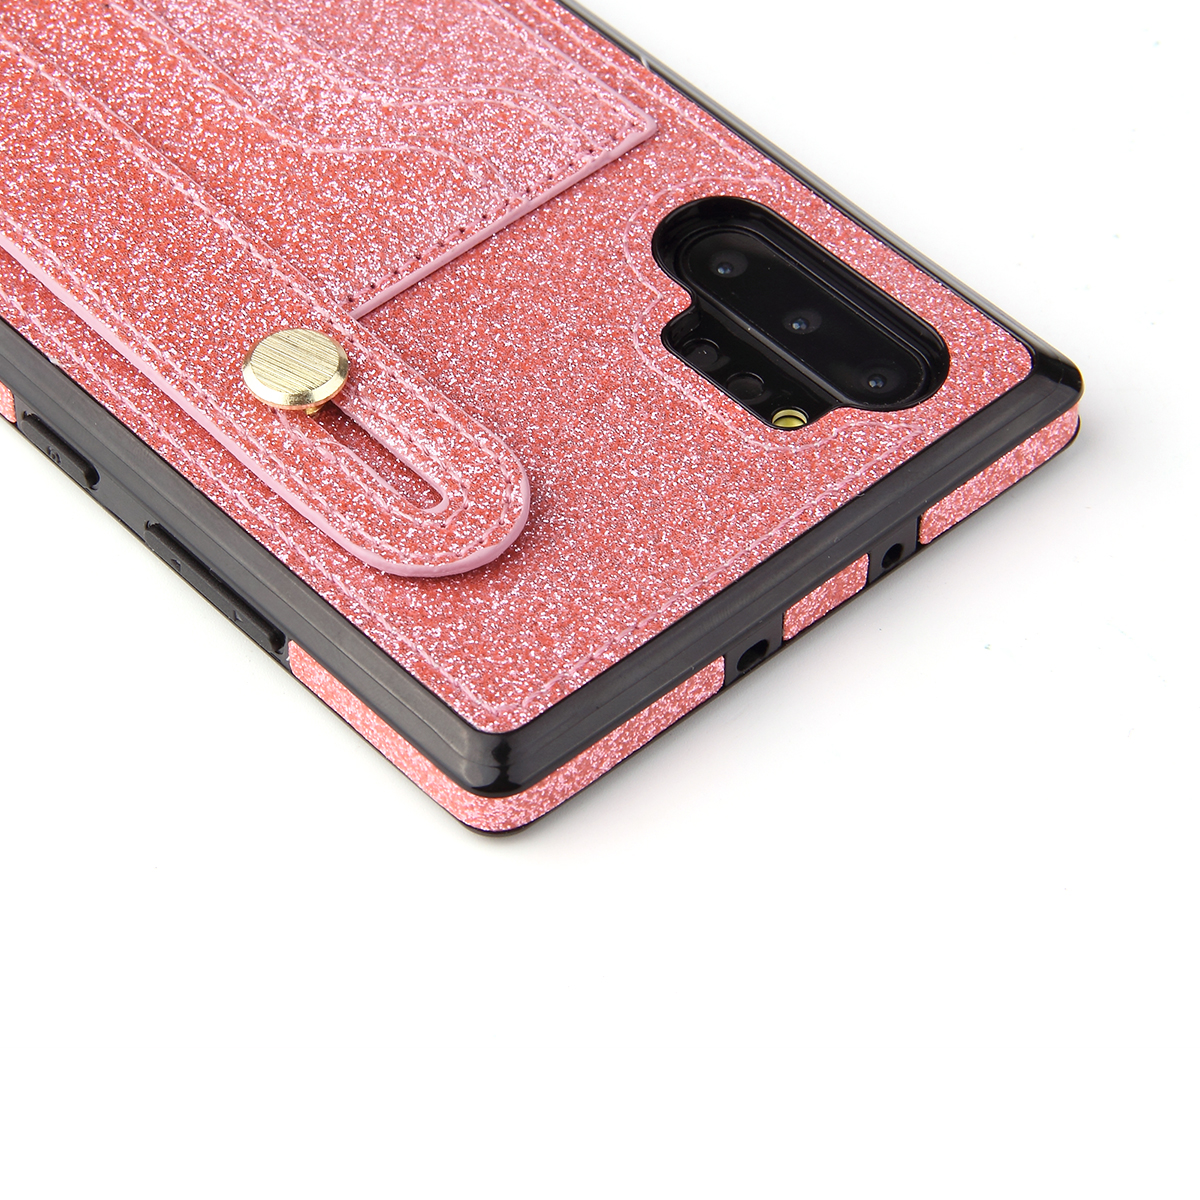 S20 Ultra Glitter Wrist Strap Case for Galaxy S20 Plus Note 10+ Soft TPU Leather Card Holder Cover Bracket Solid Color Coque